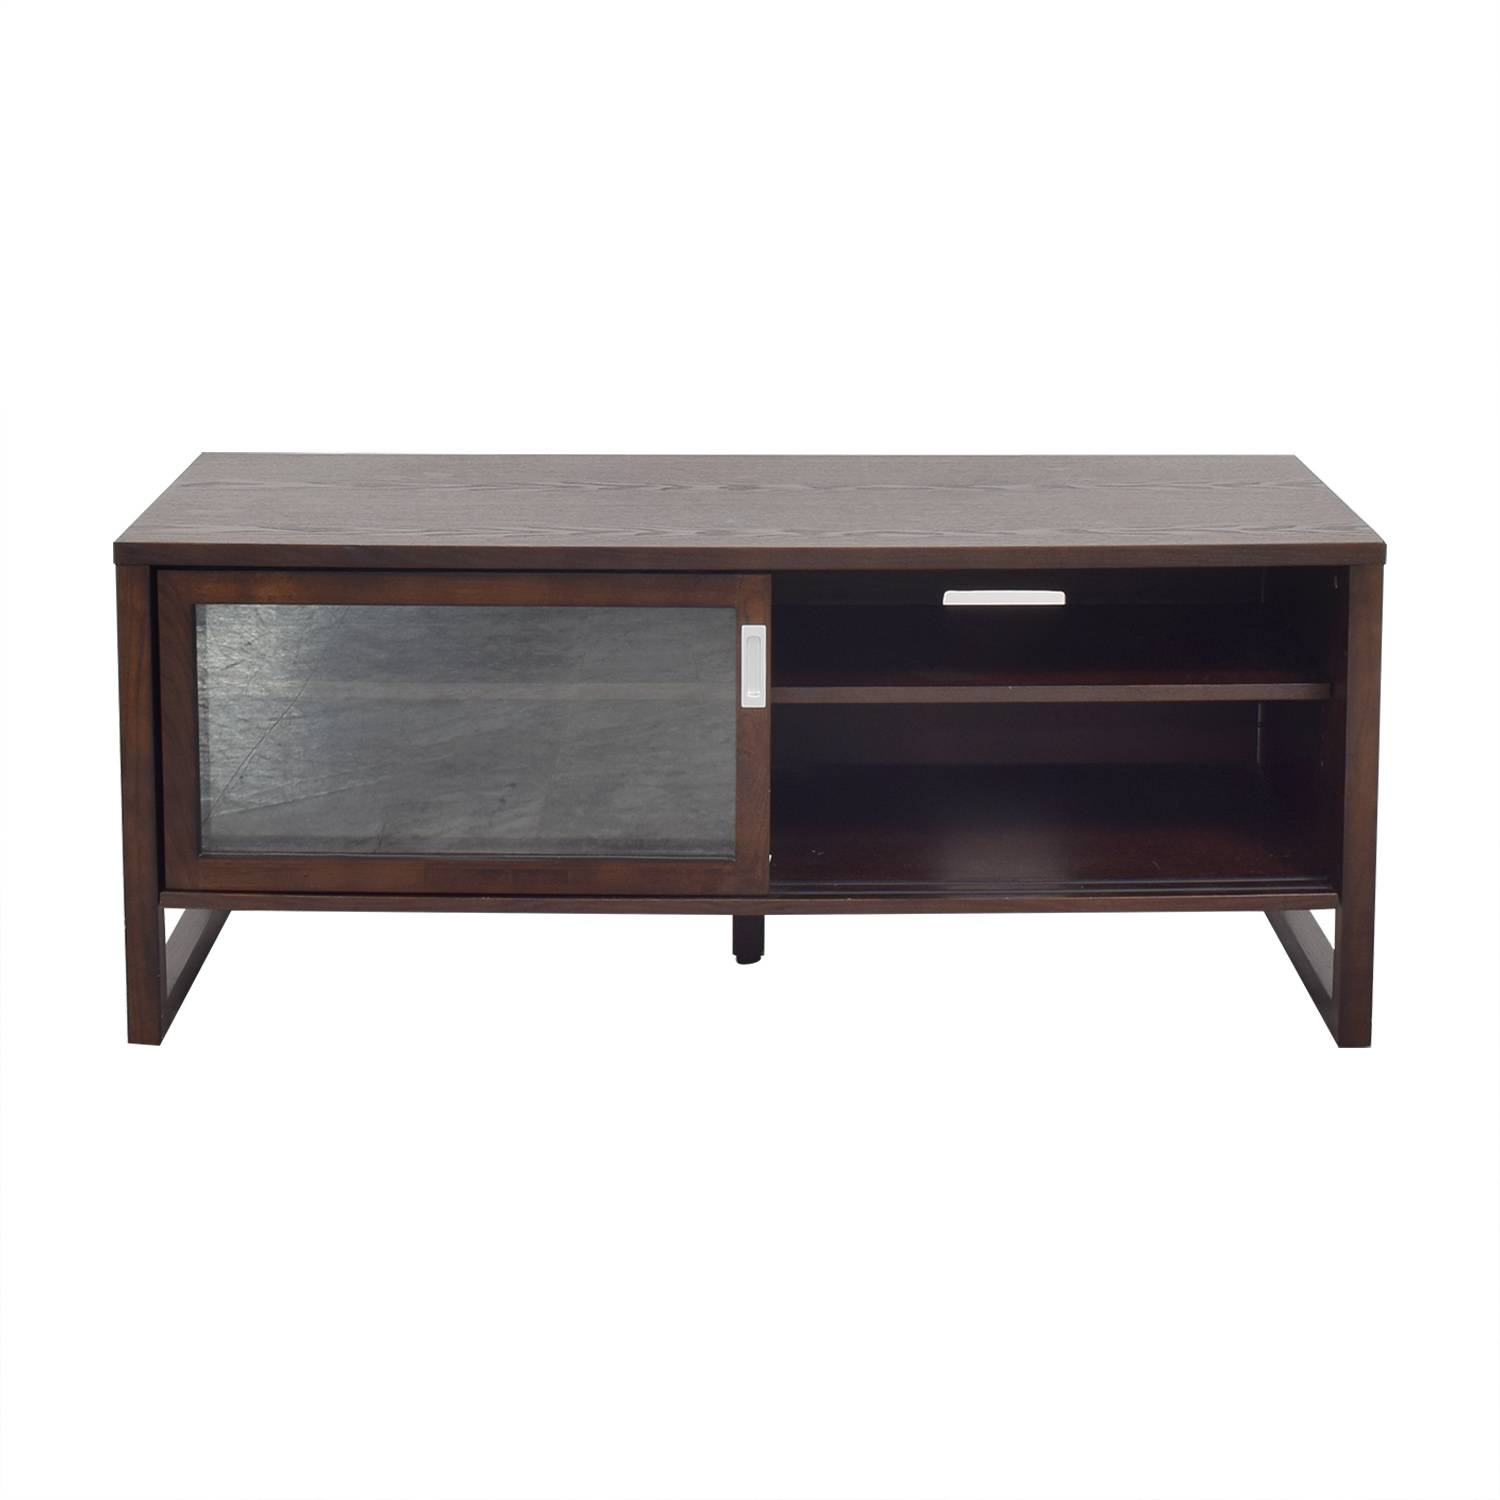 West Elm West Elm Media Console for sale